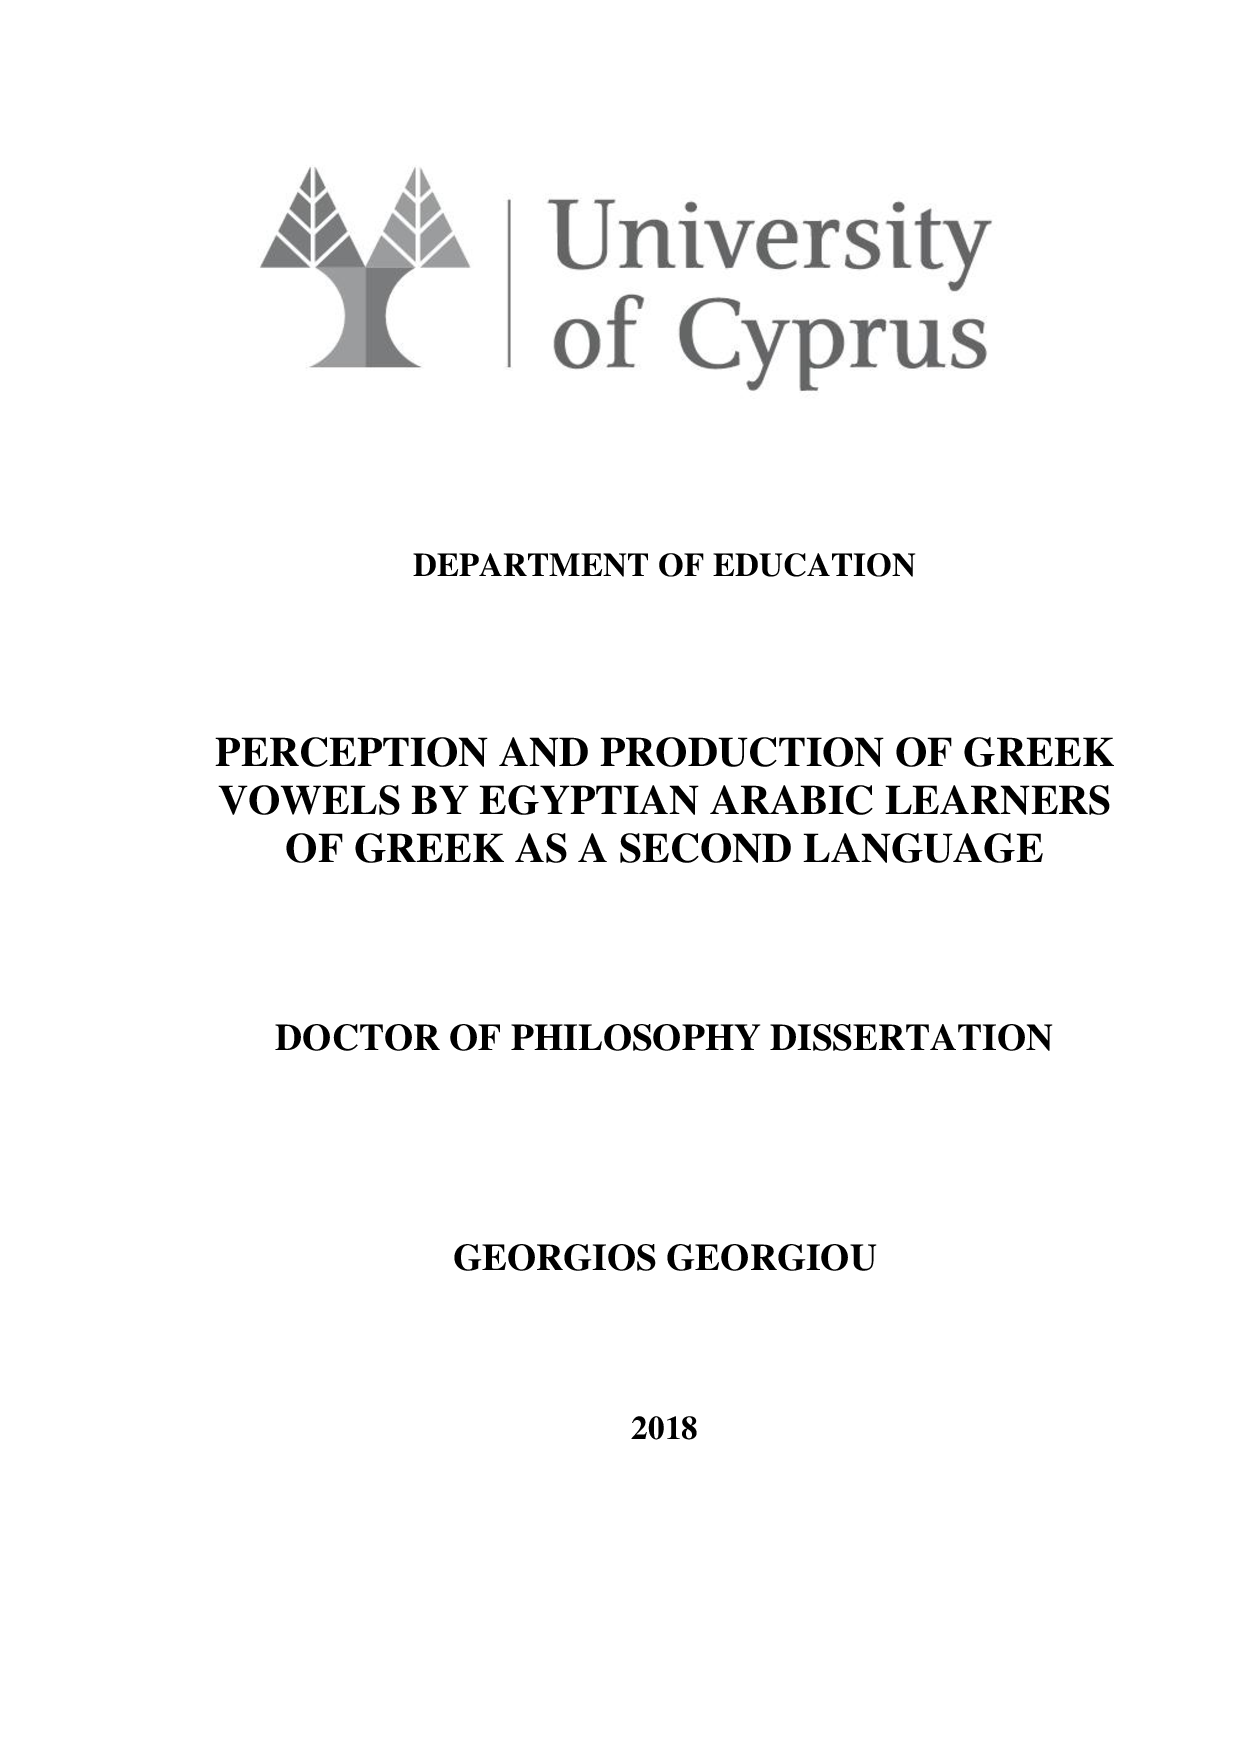 Perception and Production of Greek Vowels by Egyptian Arabic